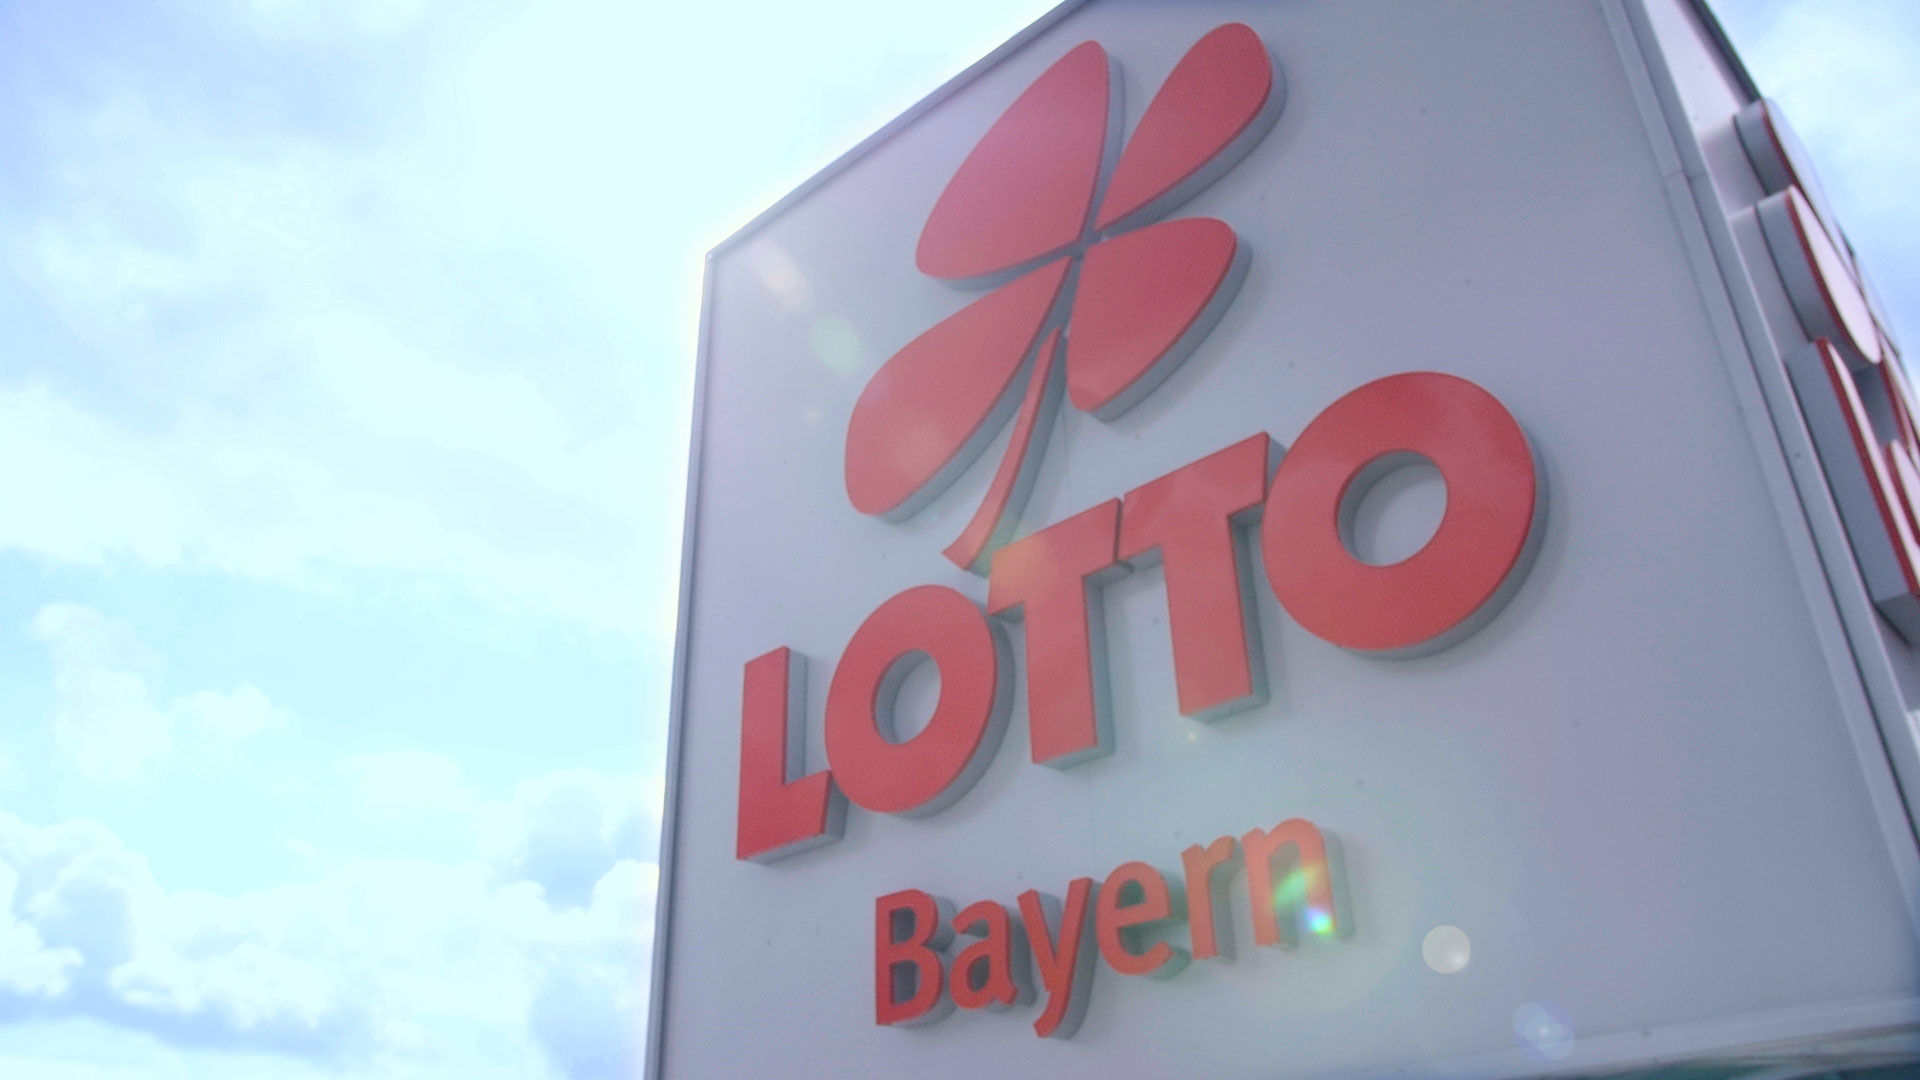 Corporate film for LOTTO Bayern to recruit new employees - Part 1